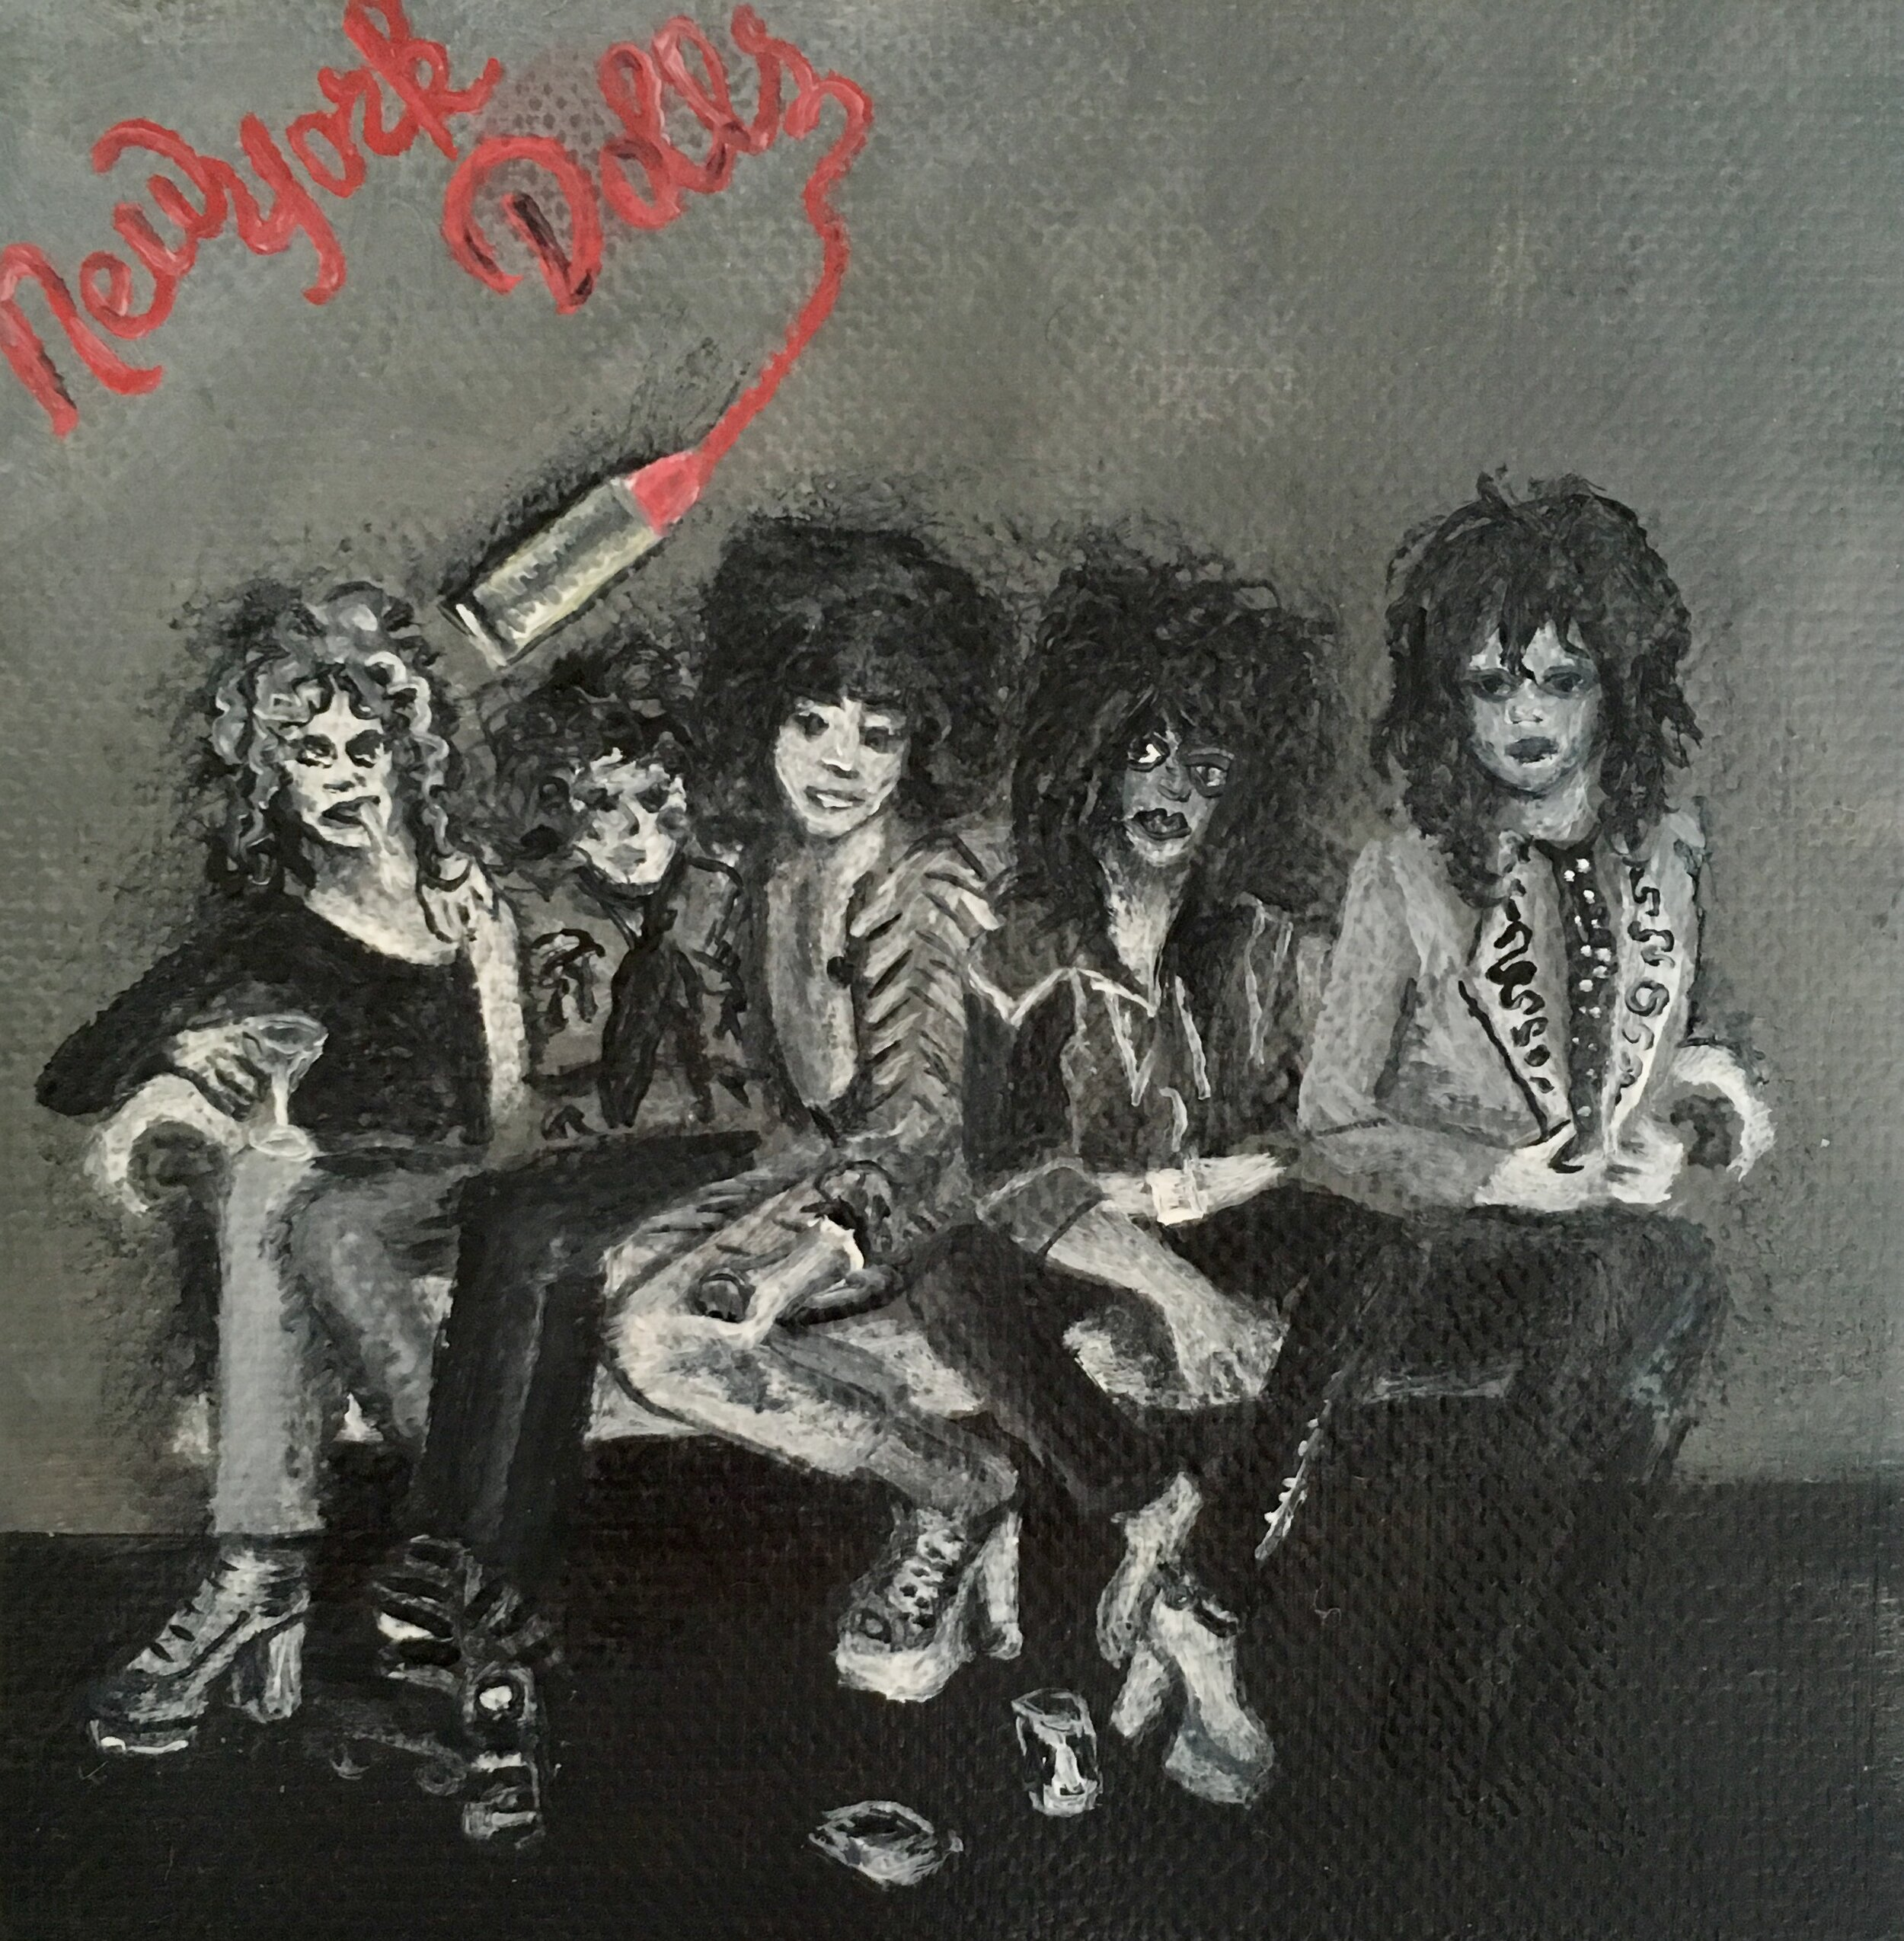 New york Dolls.jpeg